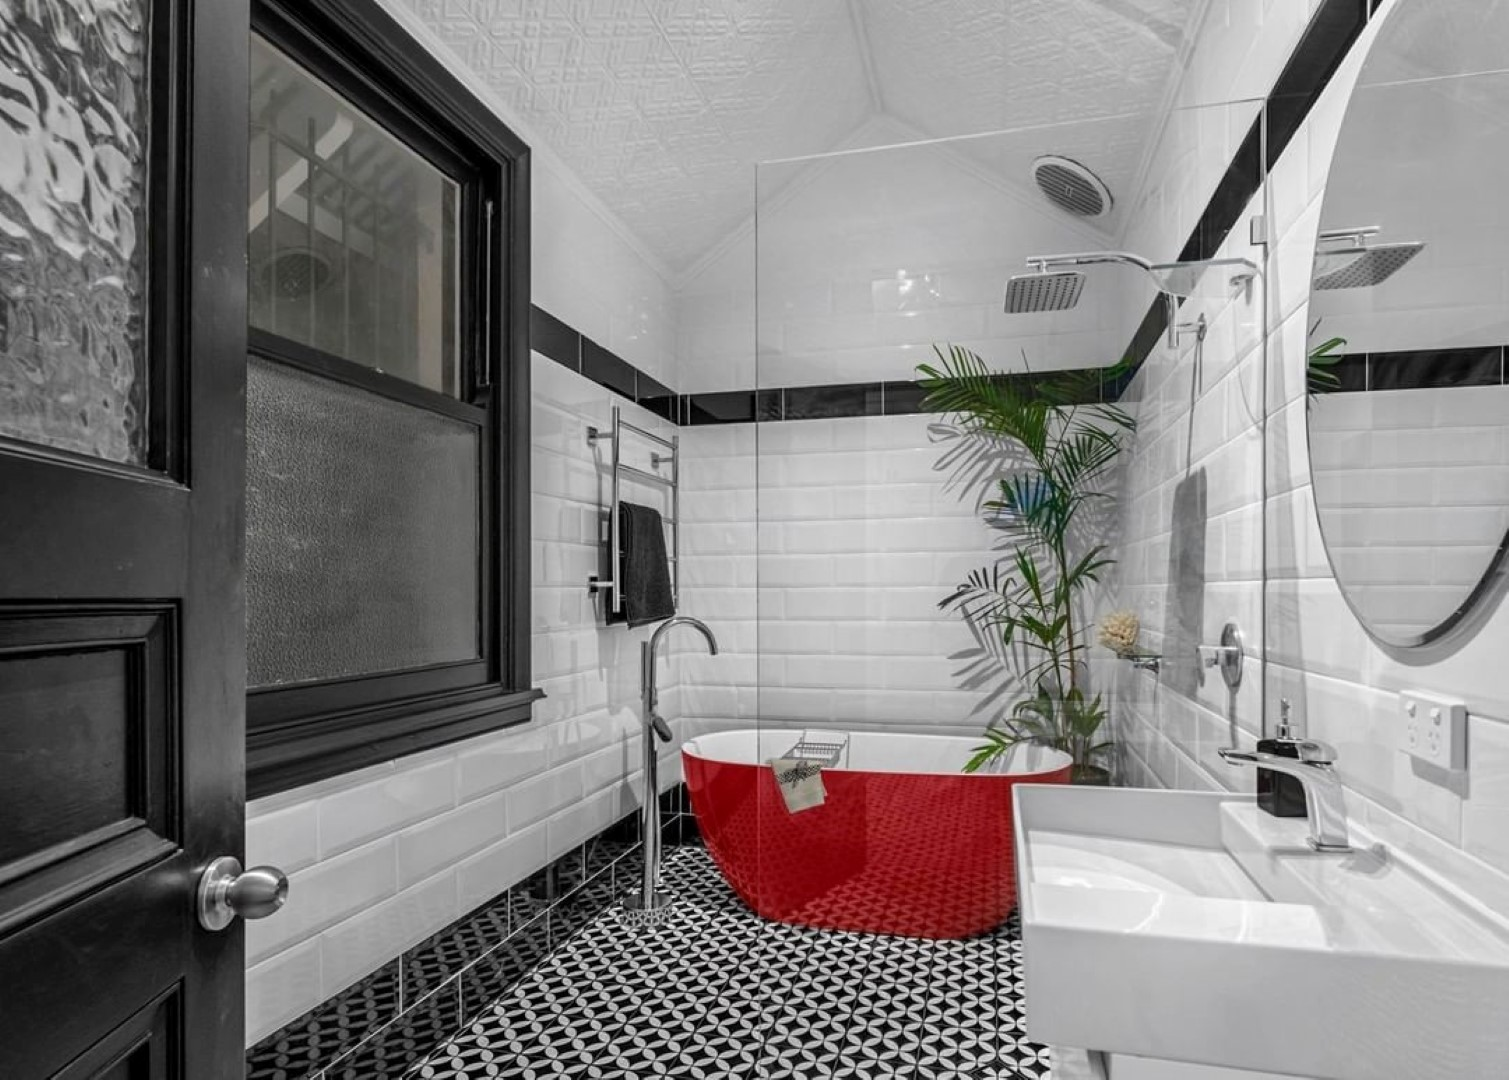 30 Most Popular Bathroom Remodel Ideas 5 Min Ideas